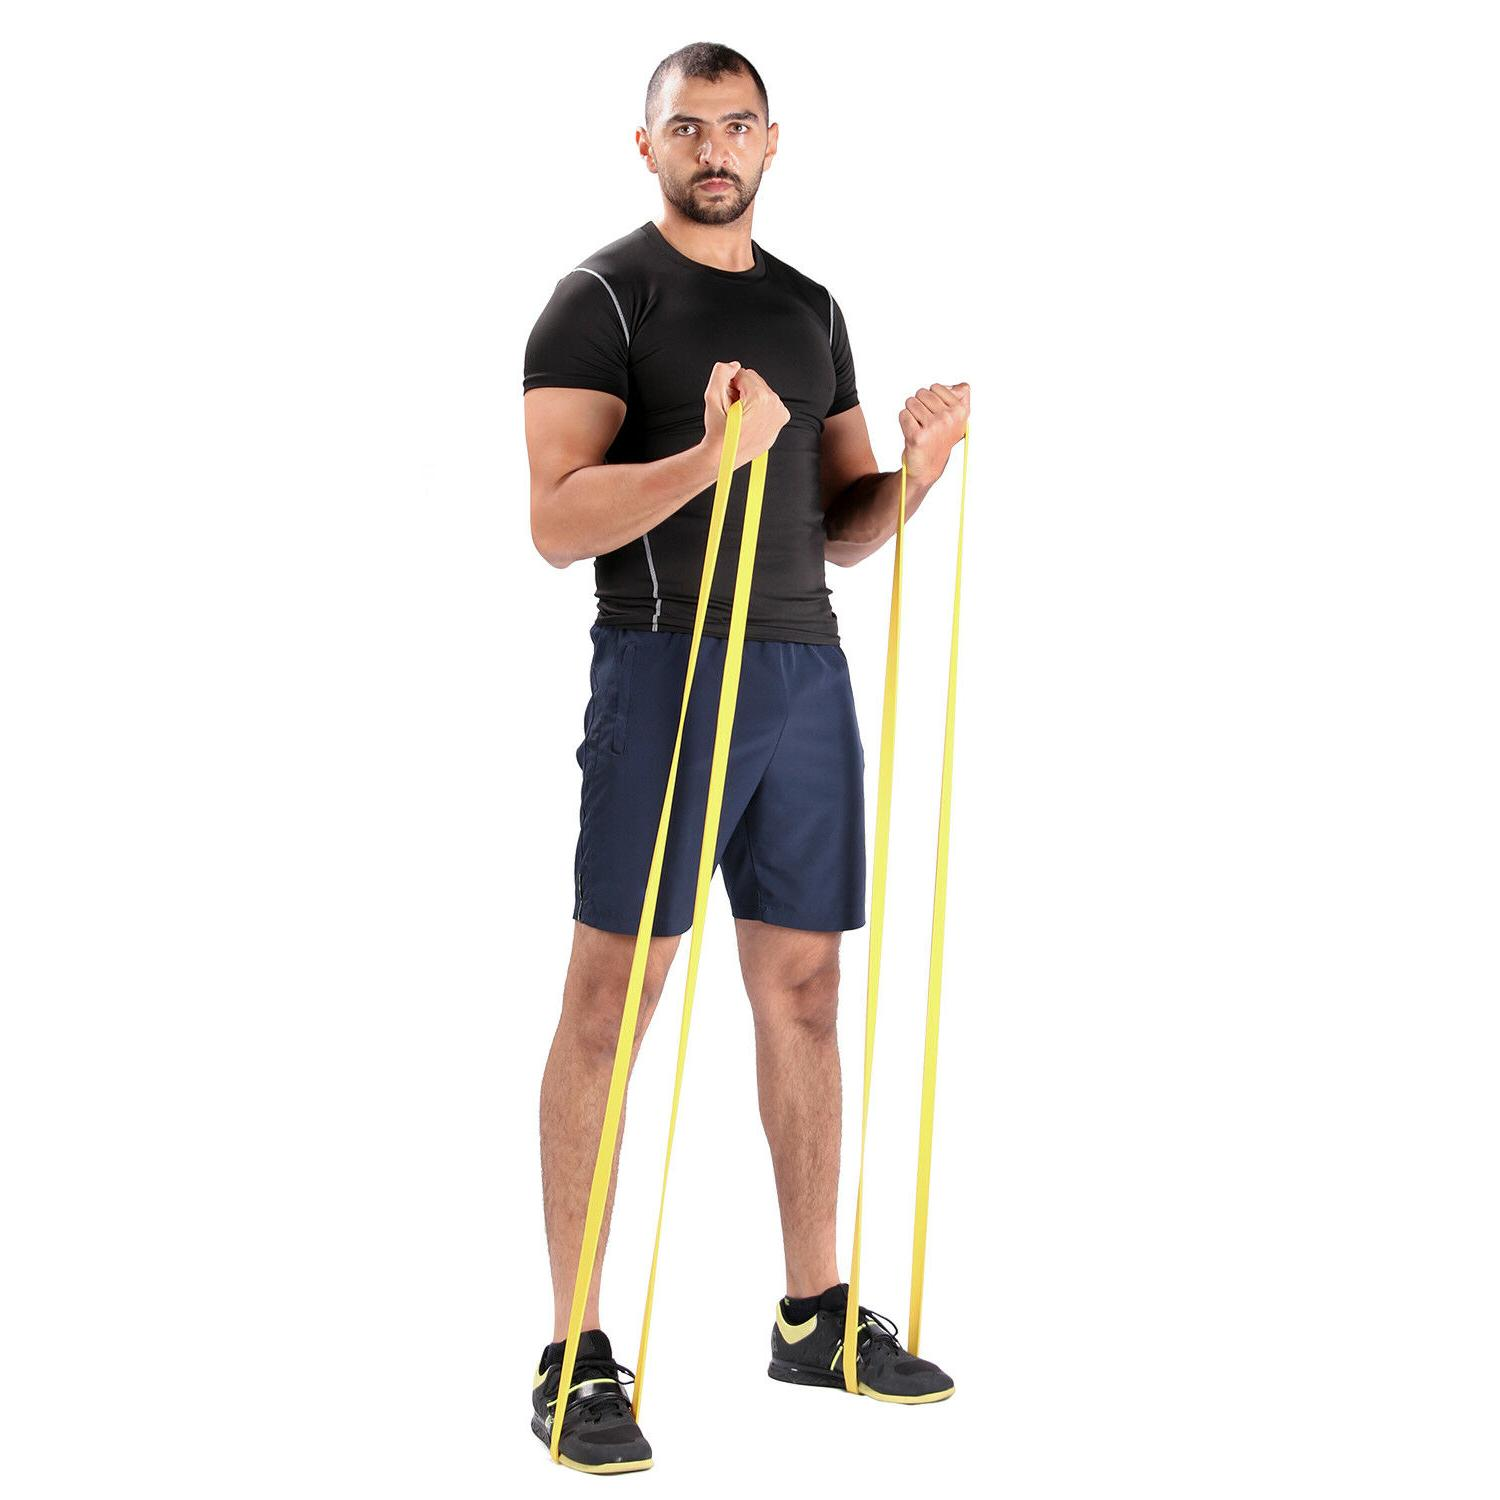 5BILLION Up Assist Bands Resistance Body Powerlifting